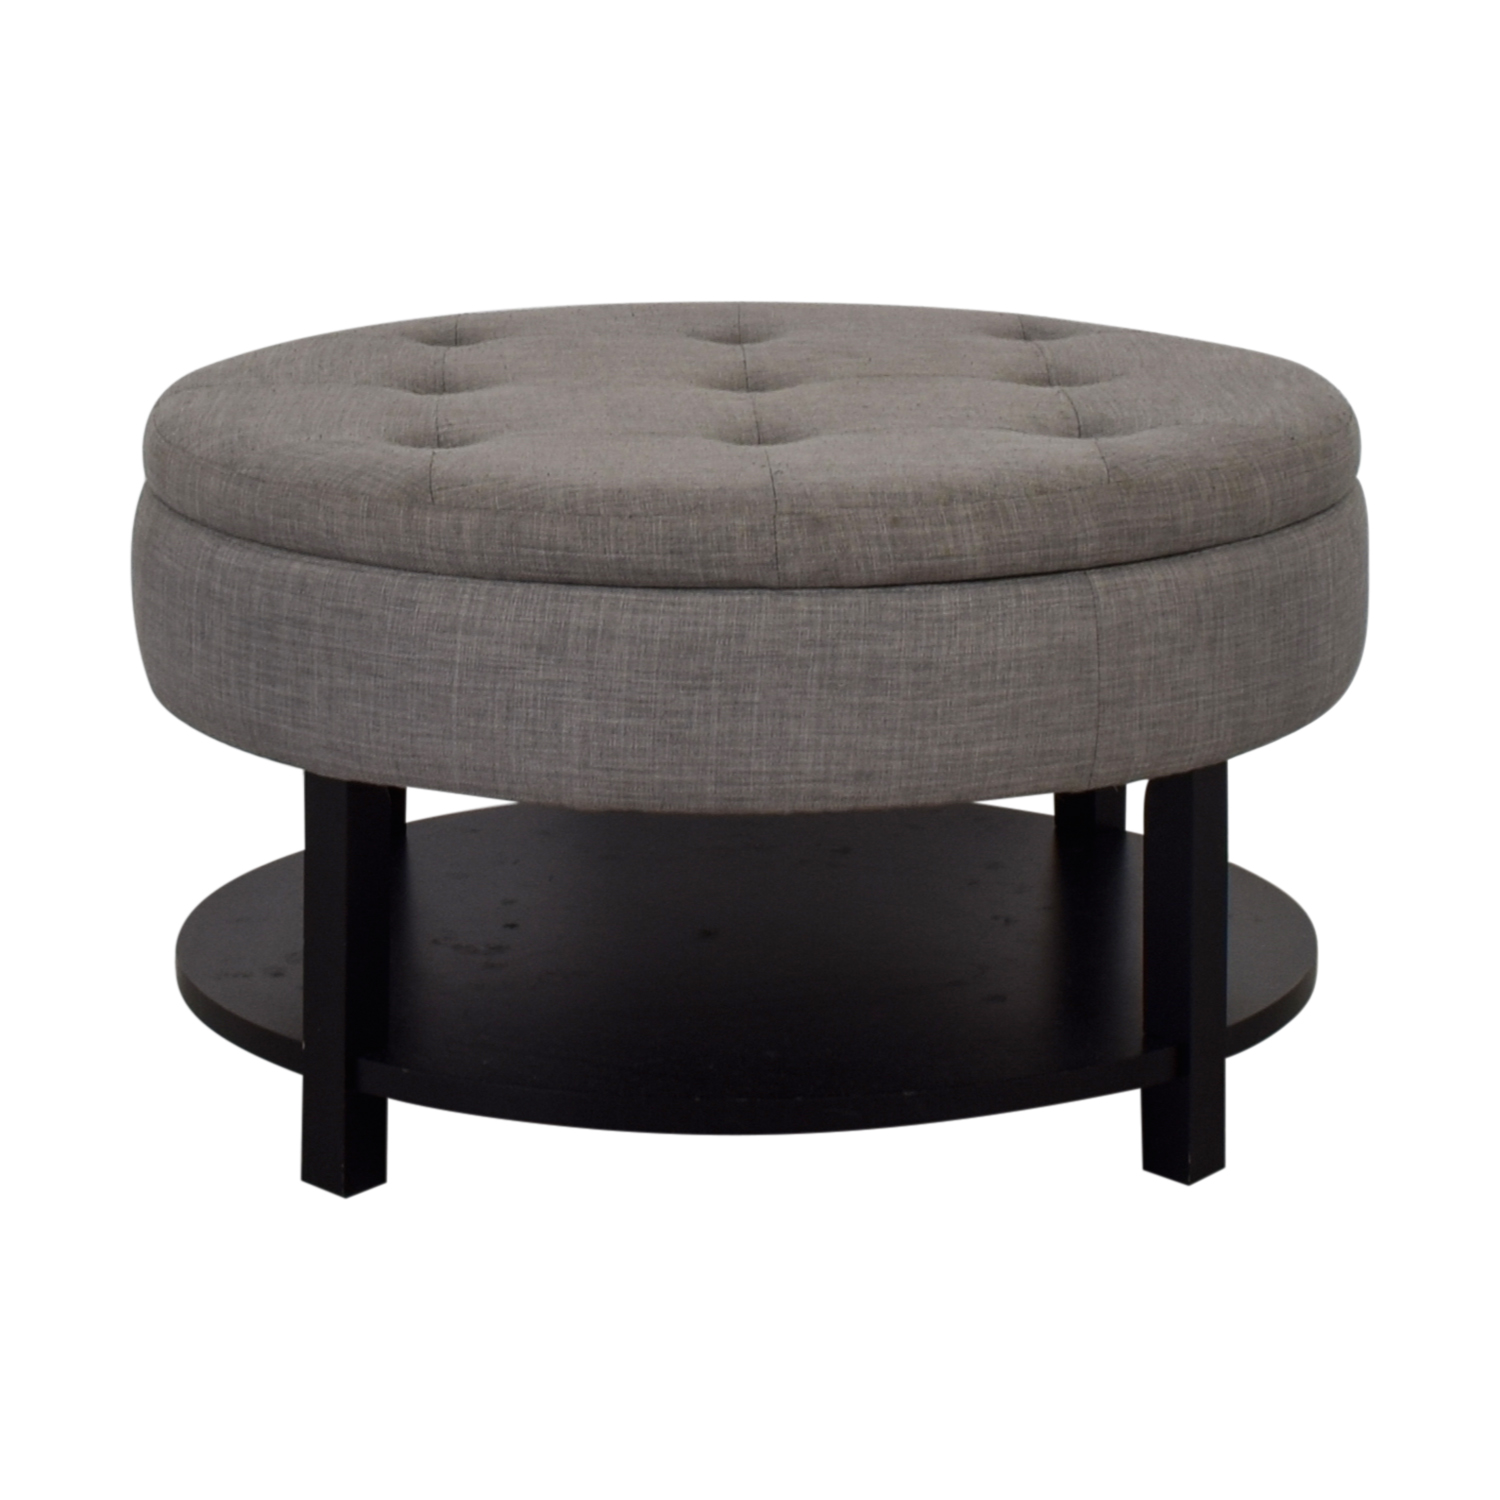 buy Hayneedle Hayneedle Belham Living Dalton Grey Coffee Table or Storage Ottoman with Tray Shelf online